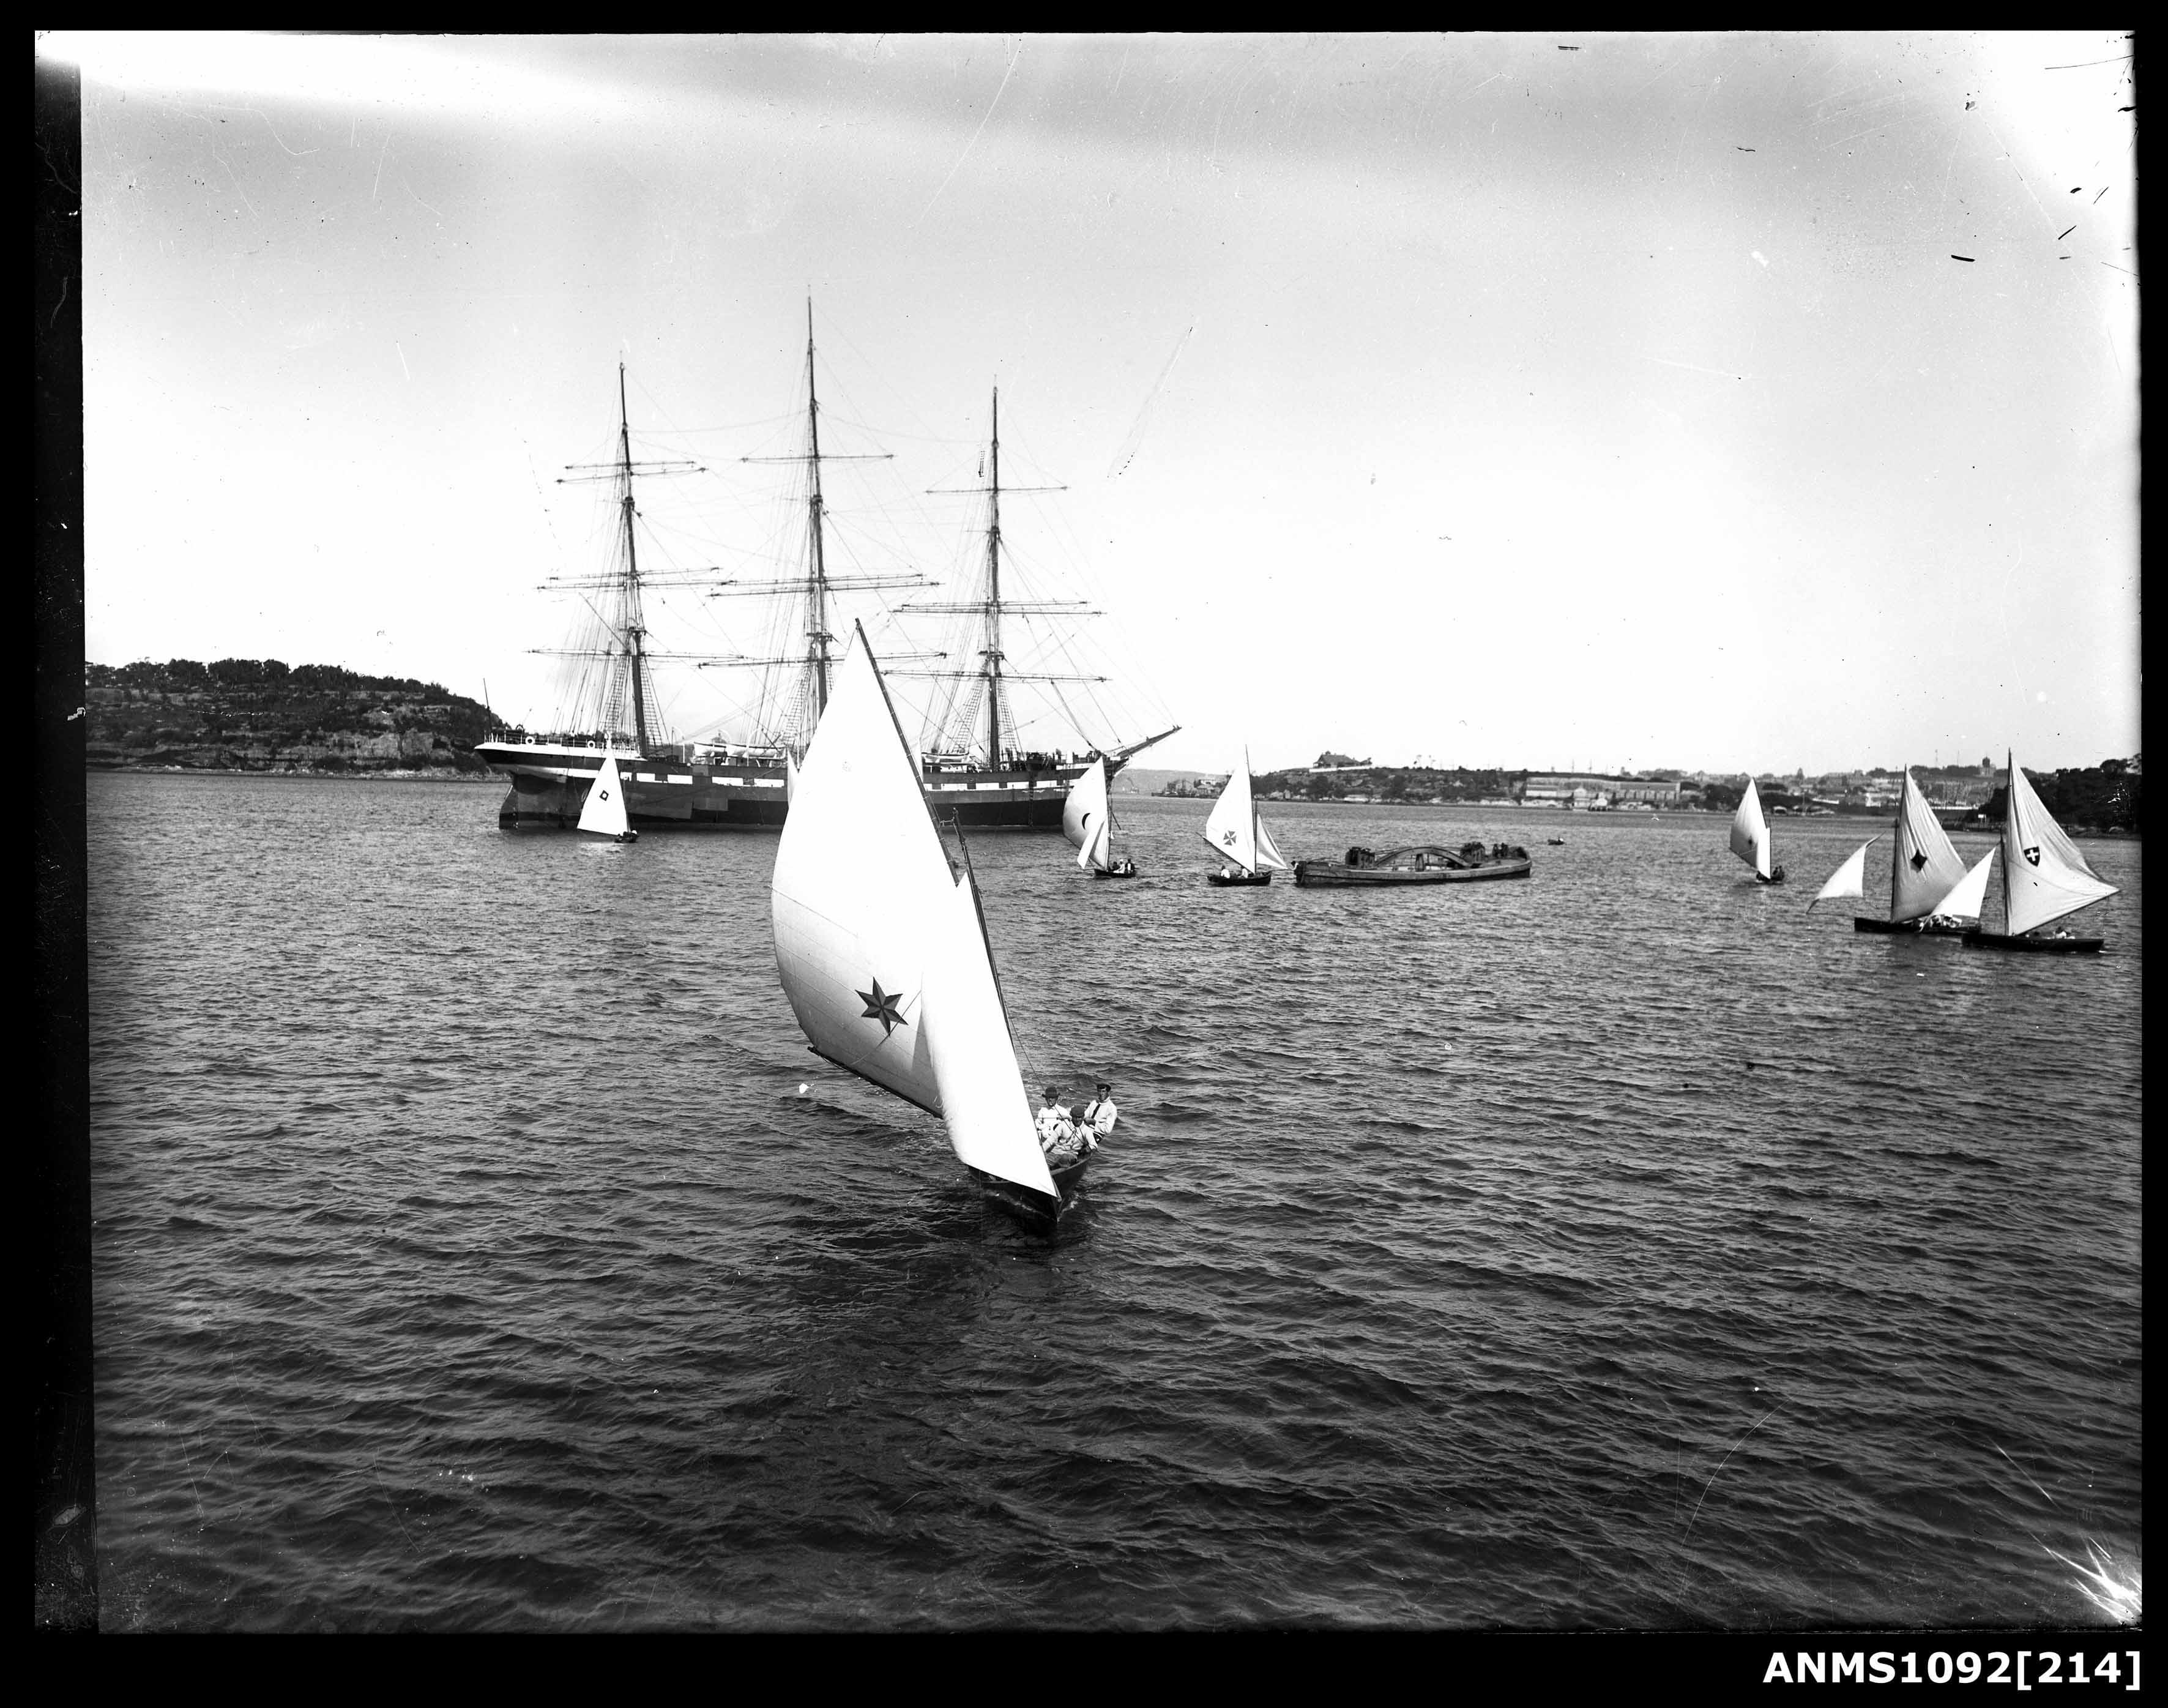 Three masted full rigged ship at anchor, Sydney Harbour